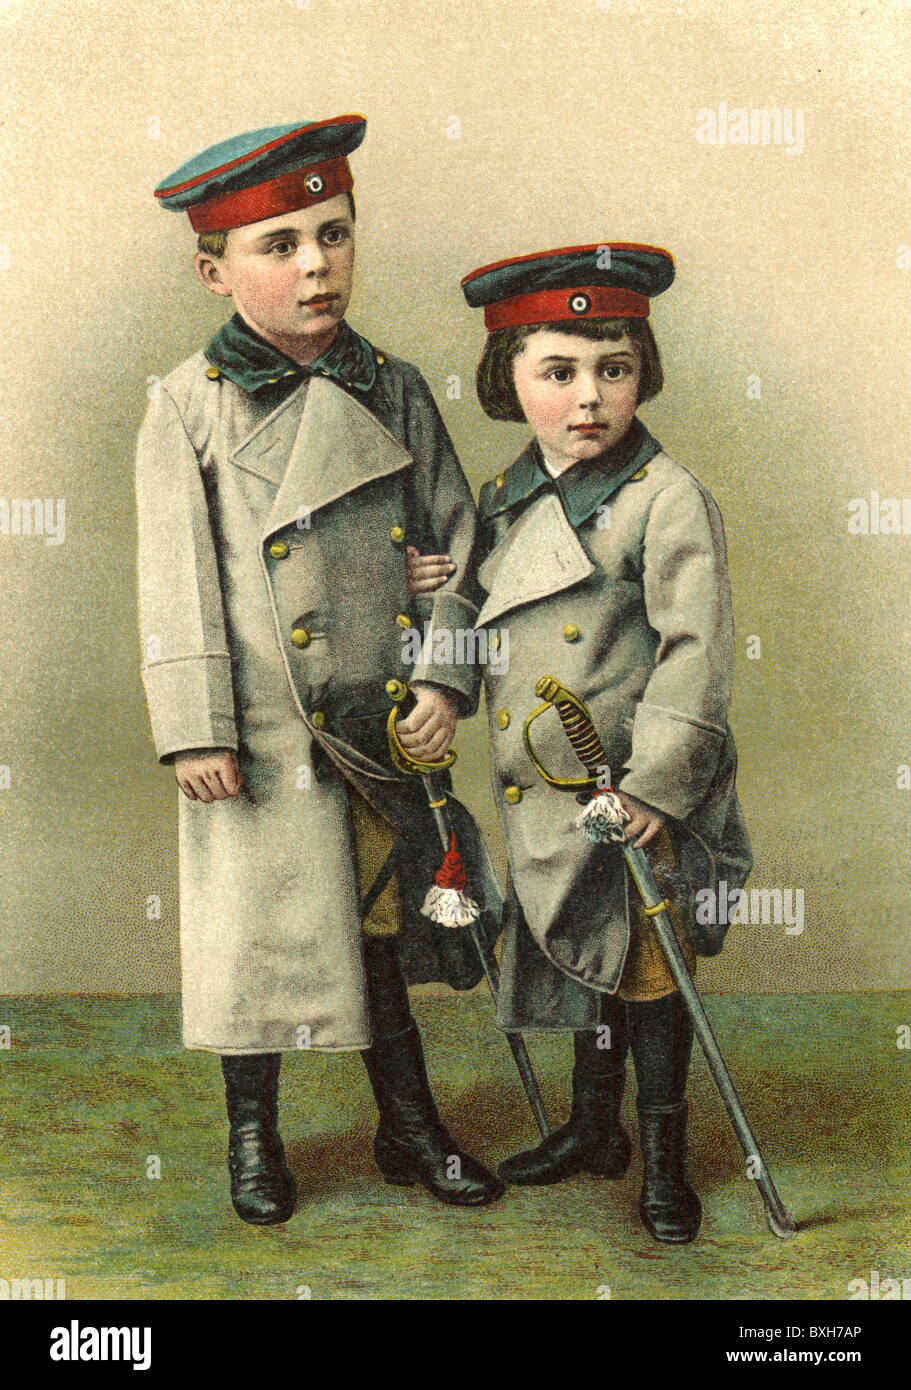 military, soldiers, children in uniform, Germany, circa 1890, Additional-Rights-Clearences-NA - Stock Image